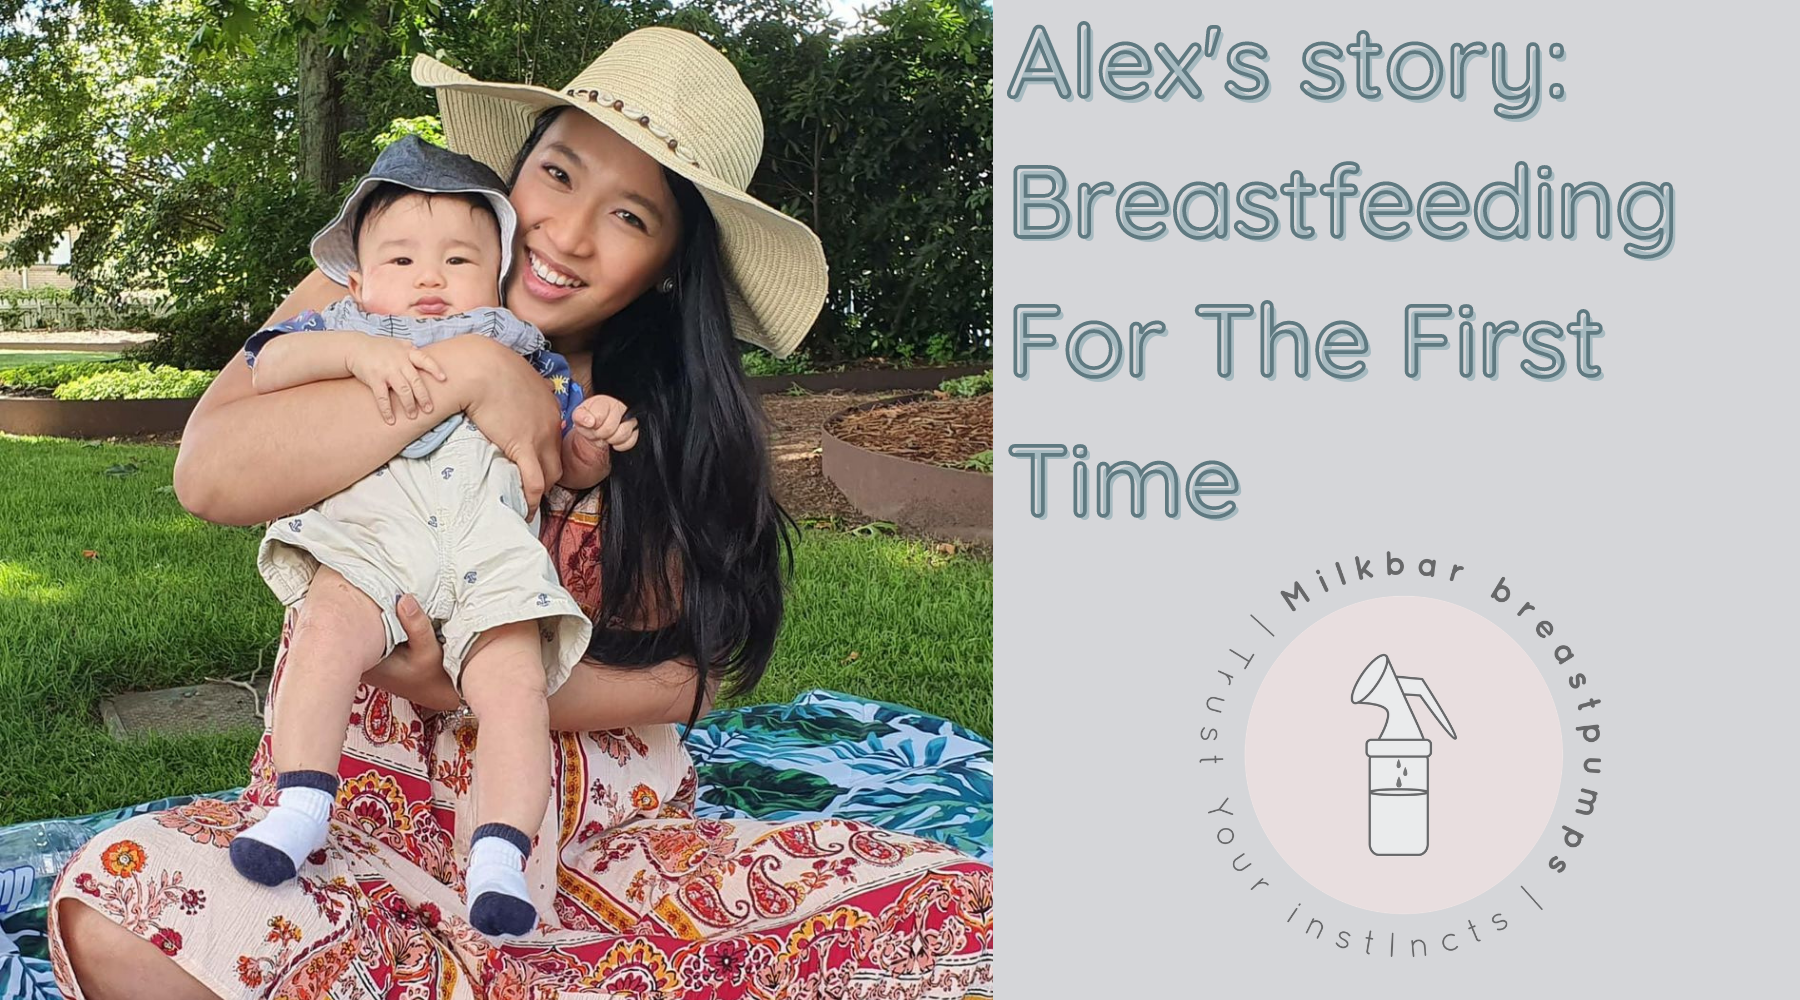 Alex's story: Breastfeeding For The First Time